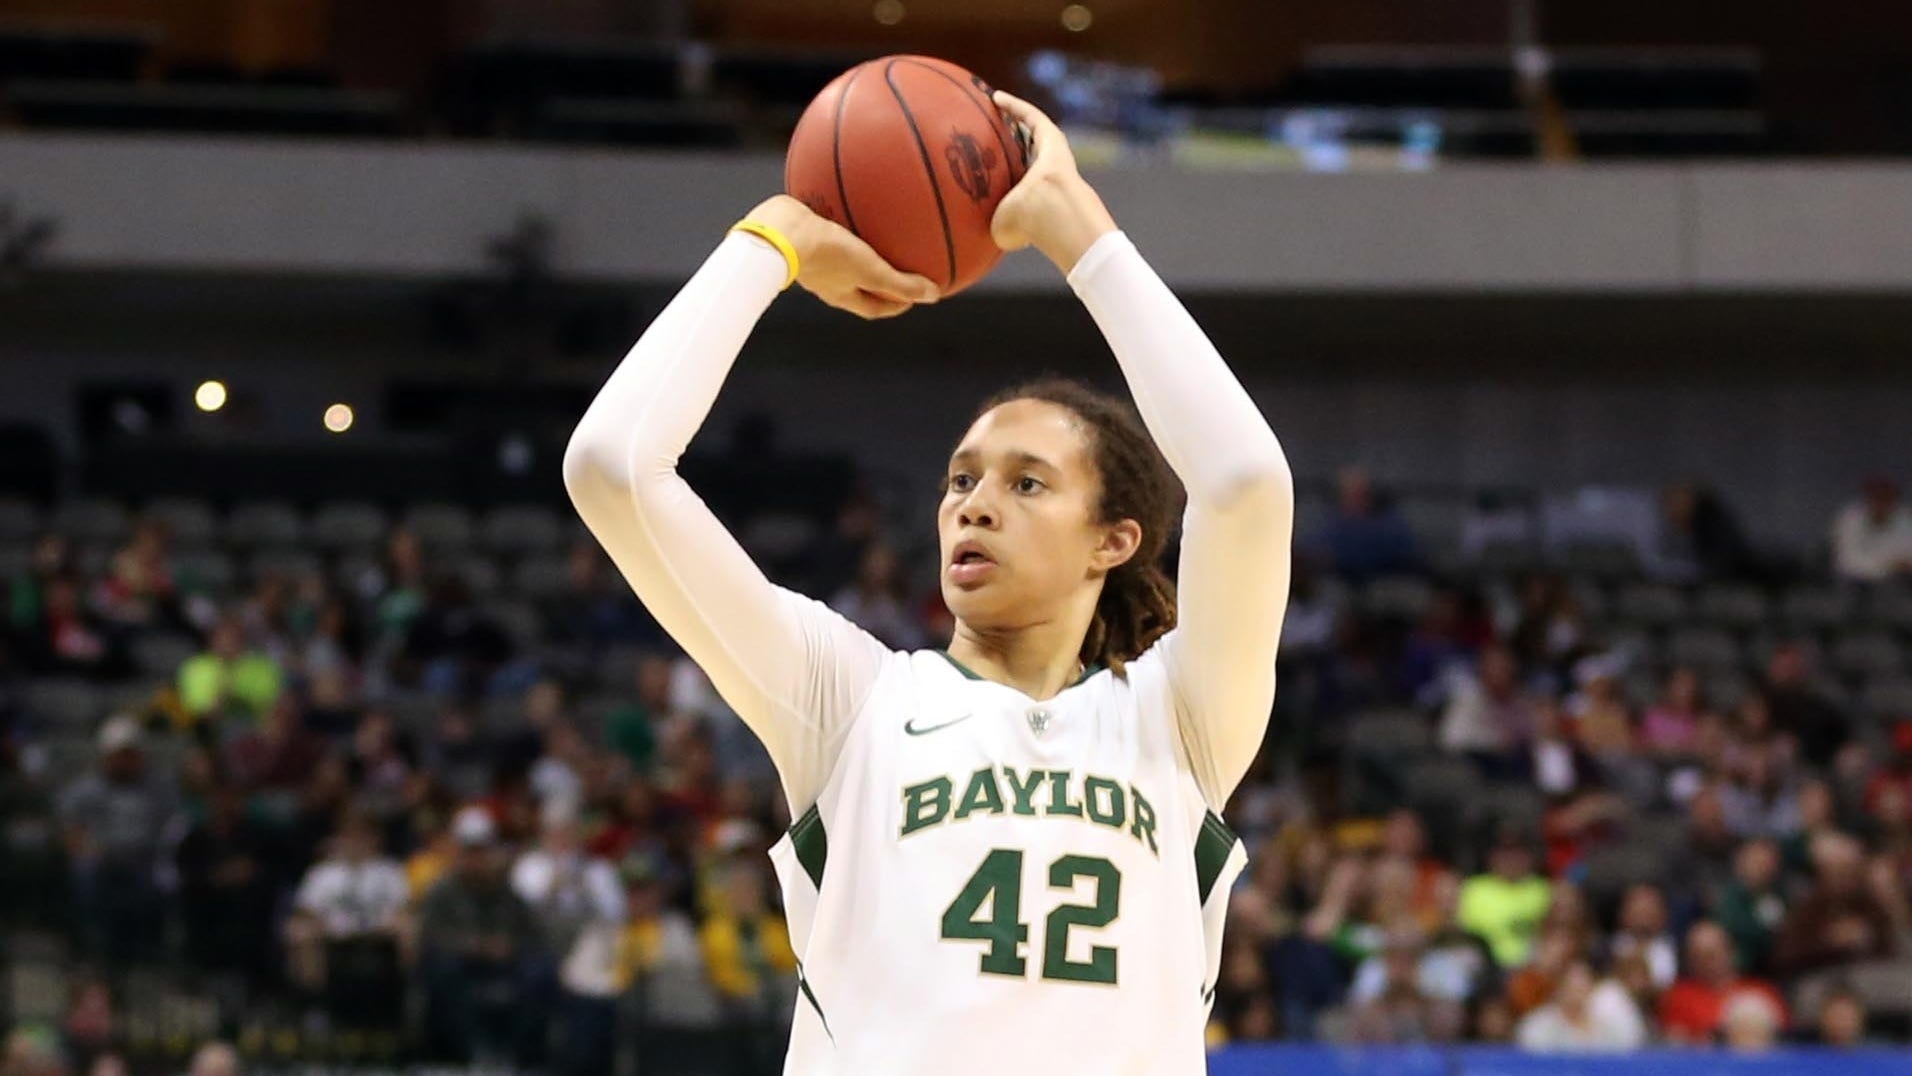 Griner baylor sexuality